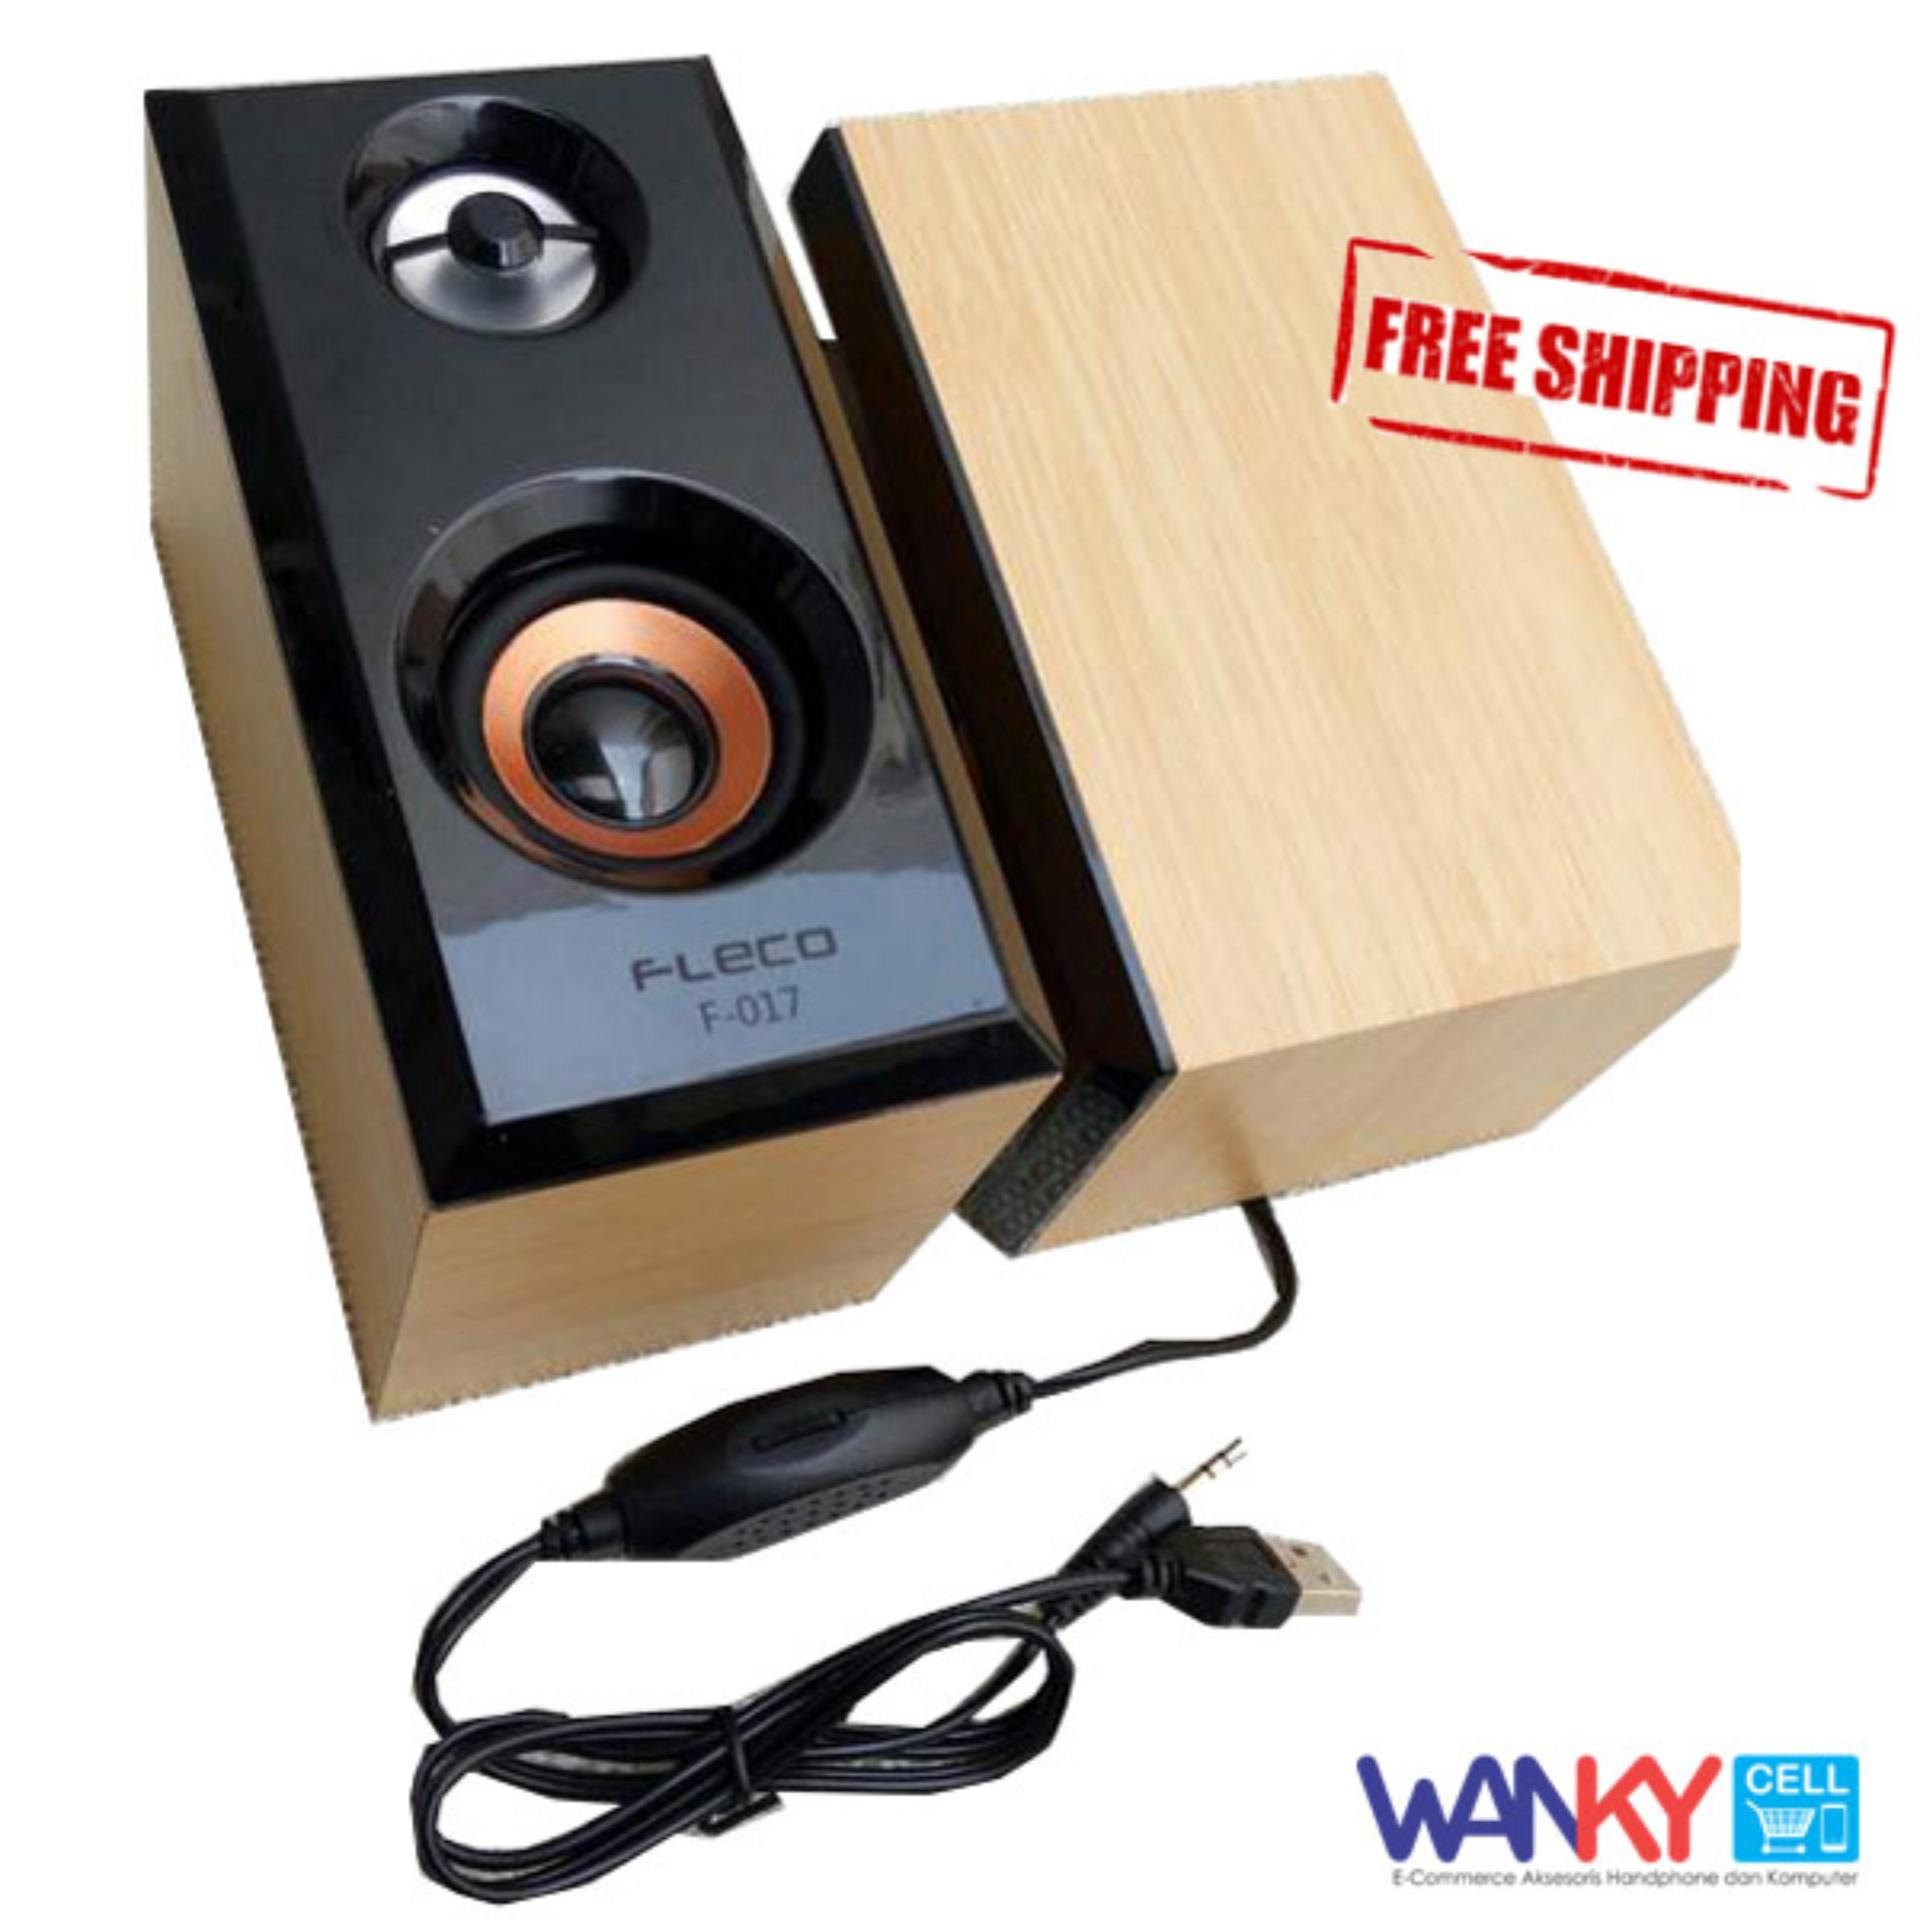 Fleco F 017 Wooden Speaker Pc Mini Usb 2 Cream Wanky Murah Di Jawa Barat